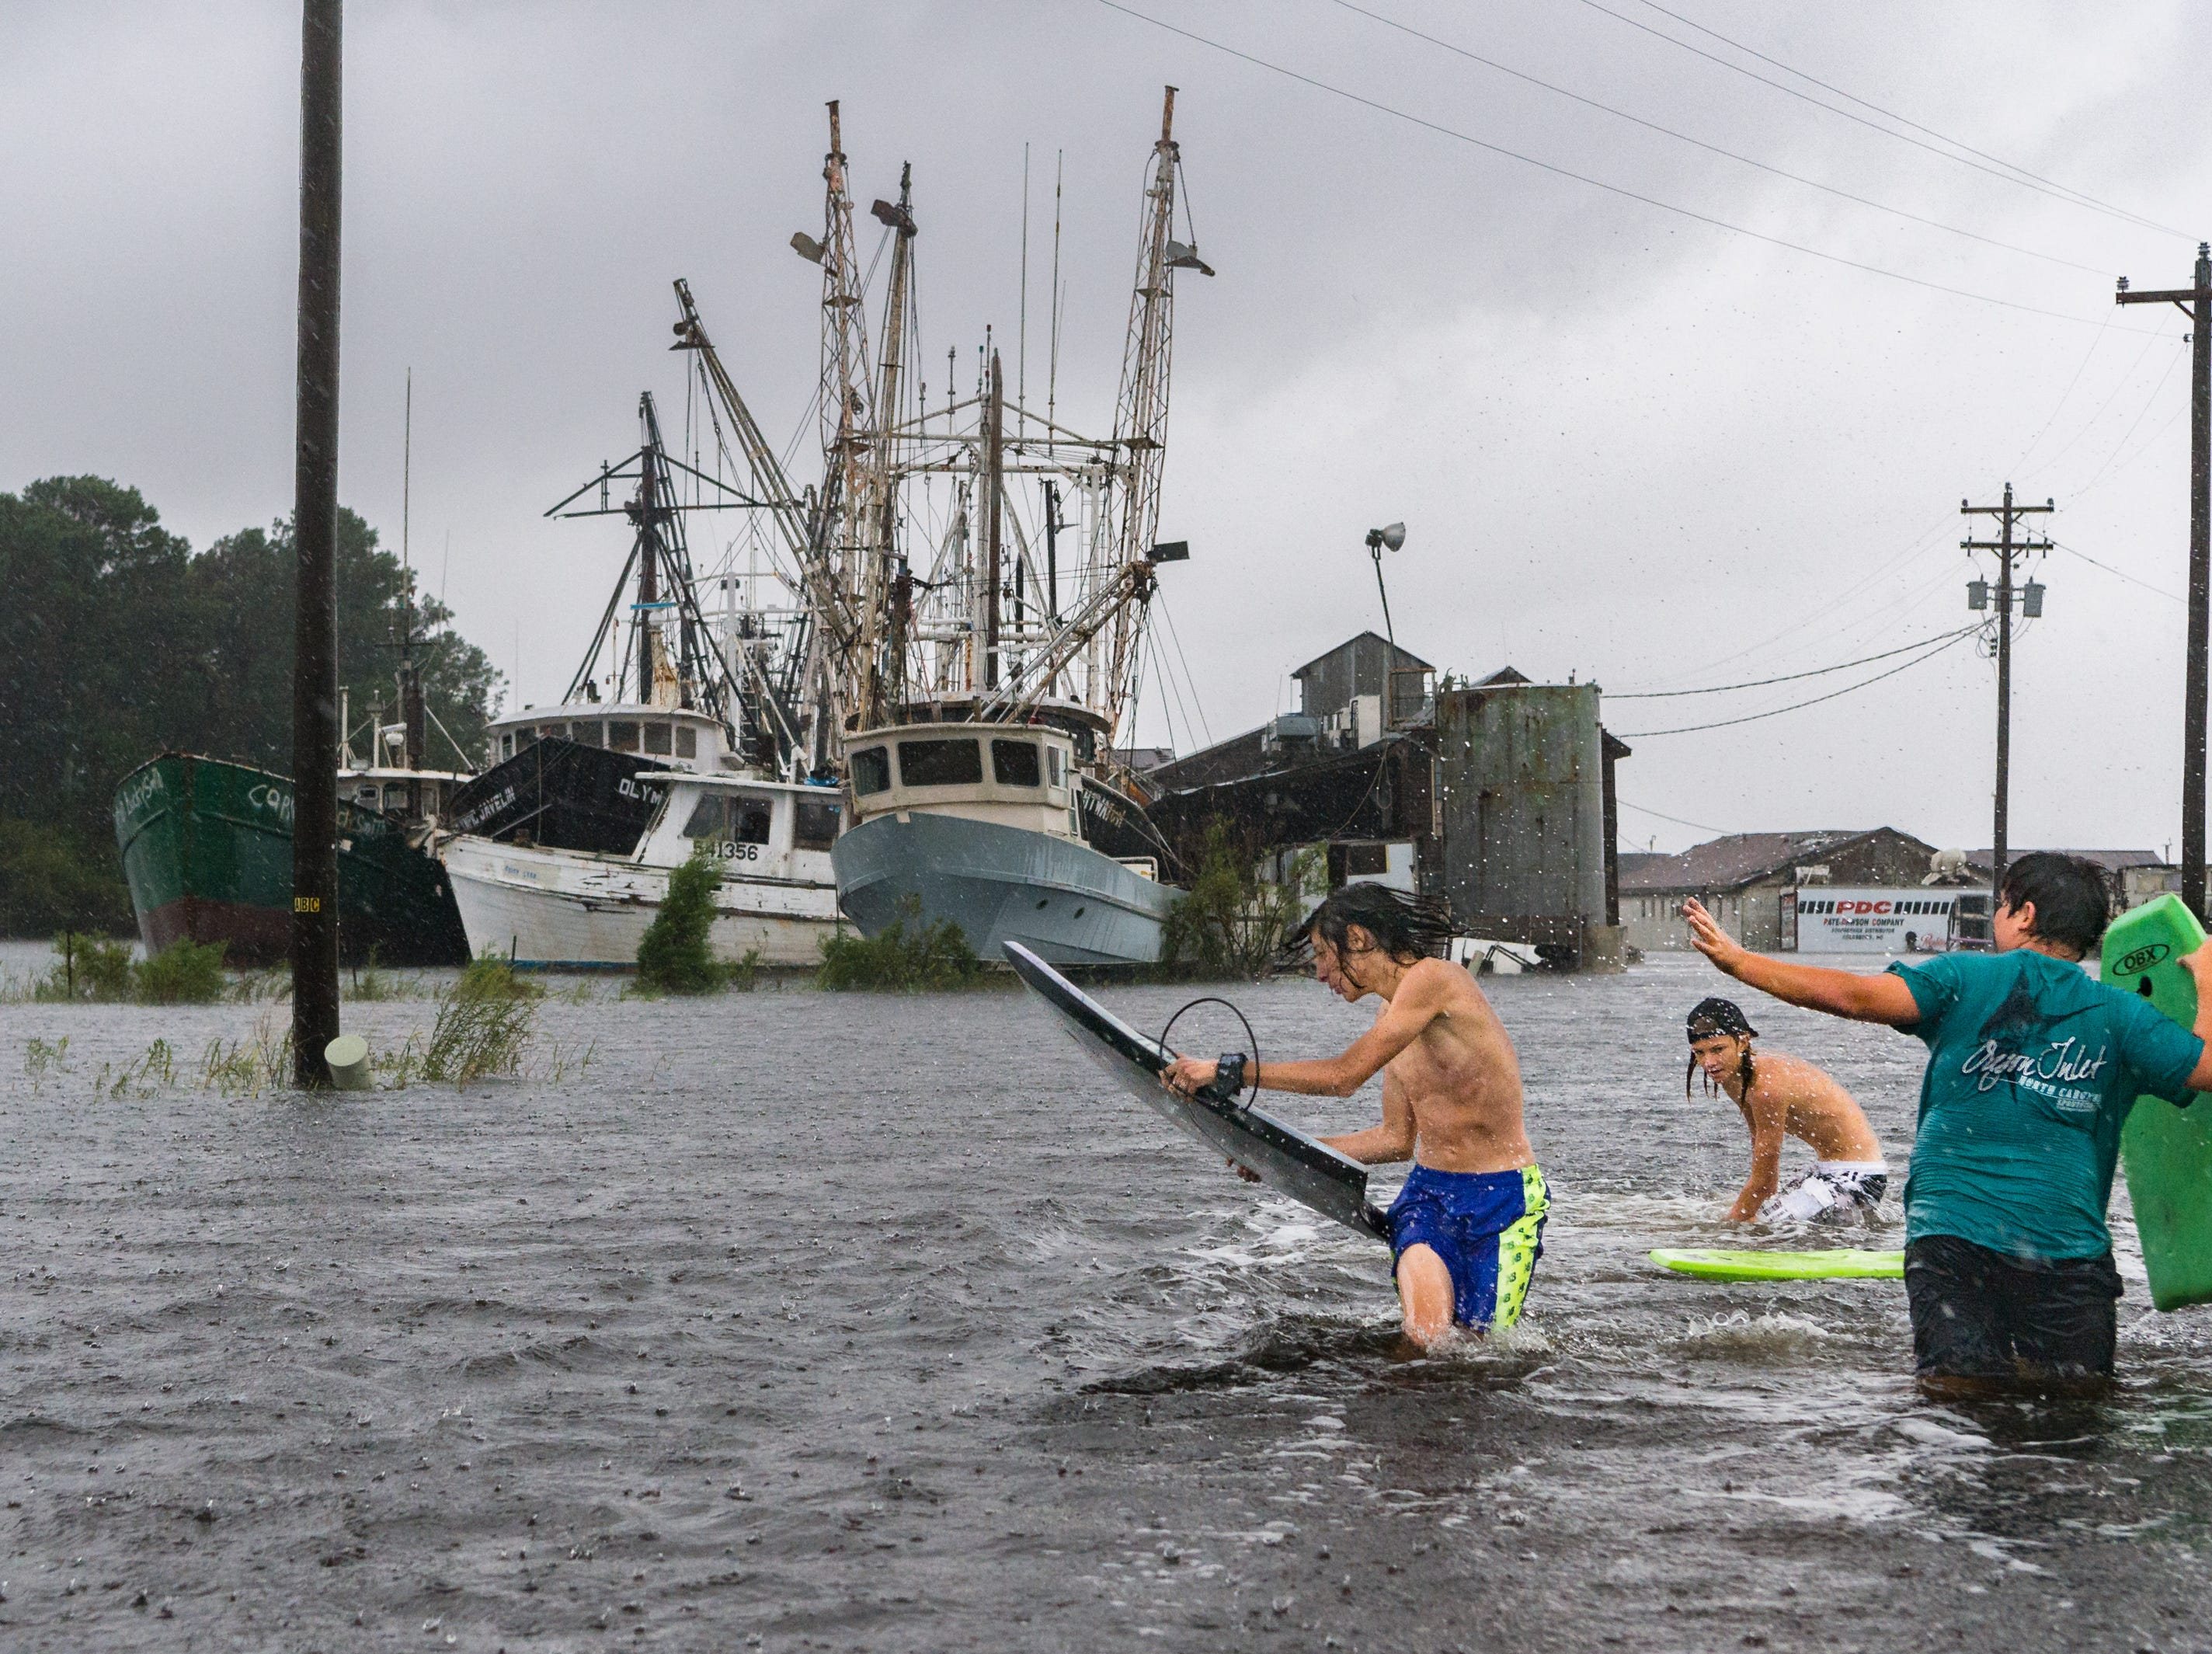 Fortino Beltran, Deacon Etheredge, and Dustin Briggs, all 14, surf through the flooded Swan Quarter, N.C harbor at the Swan Quarter Bay Sept. 14, 2018, after Hurricane Florence made landfall.